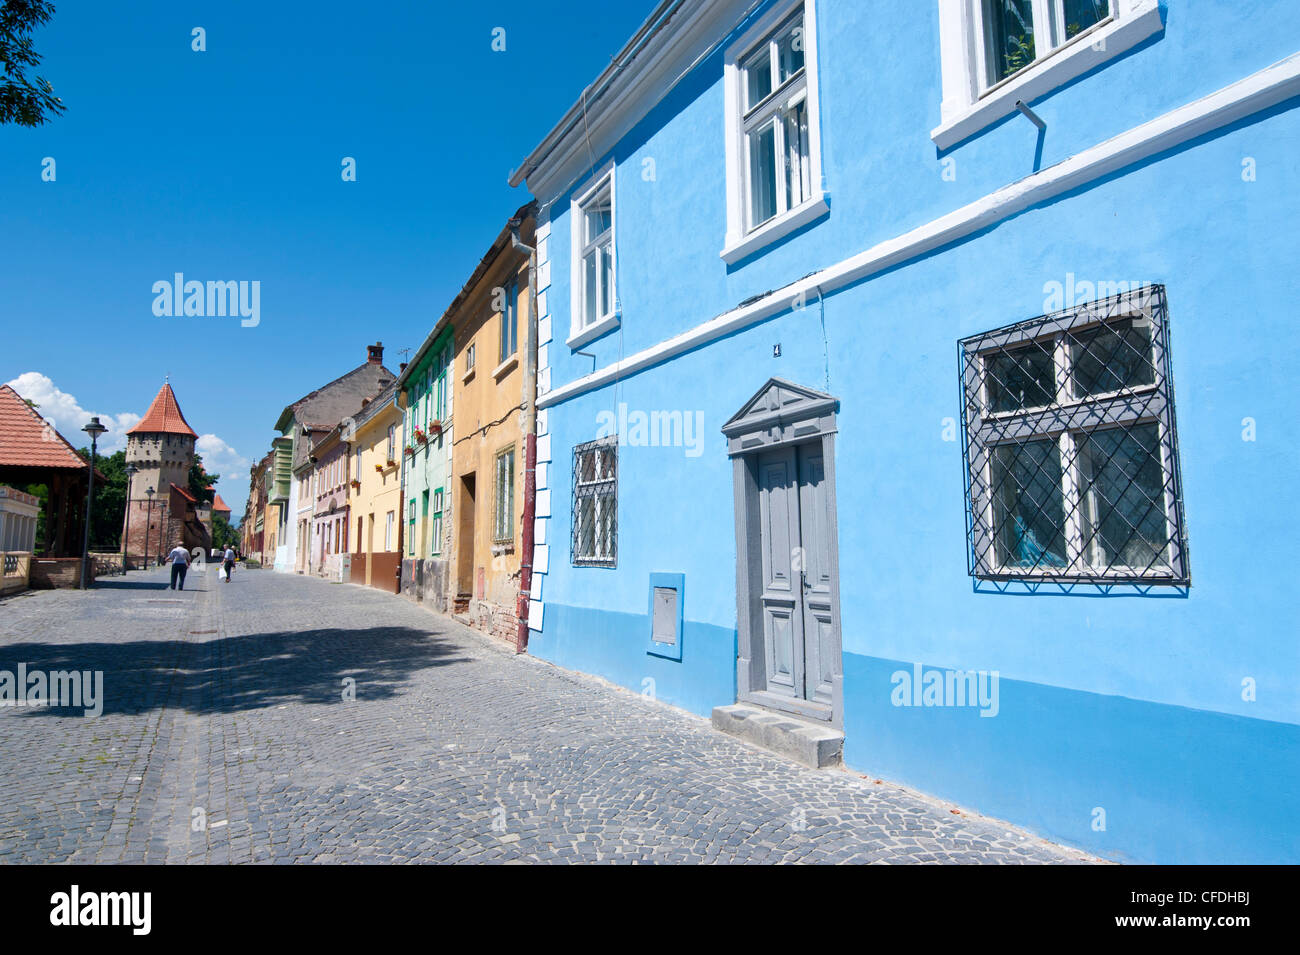 Sibiu, Romania, Europe - Stock Image